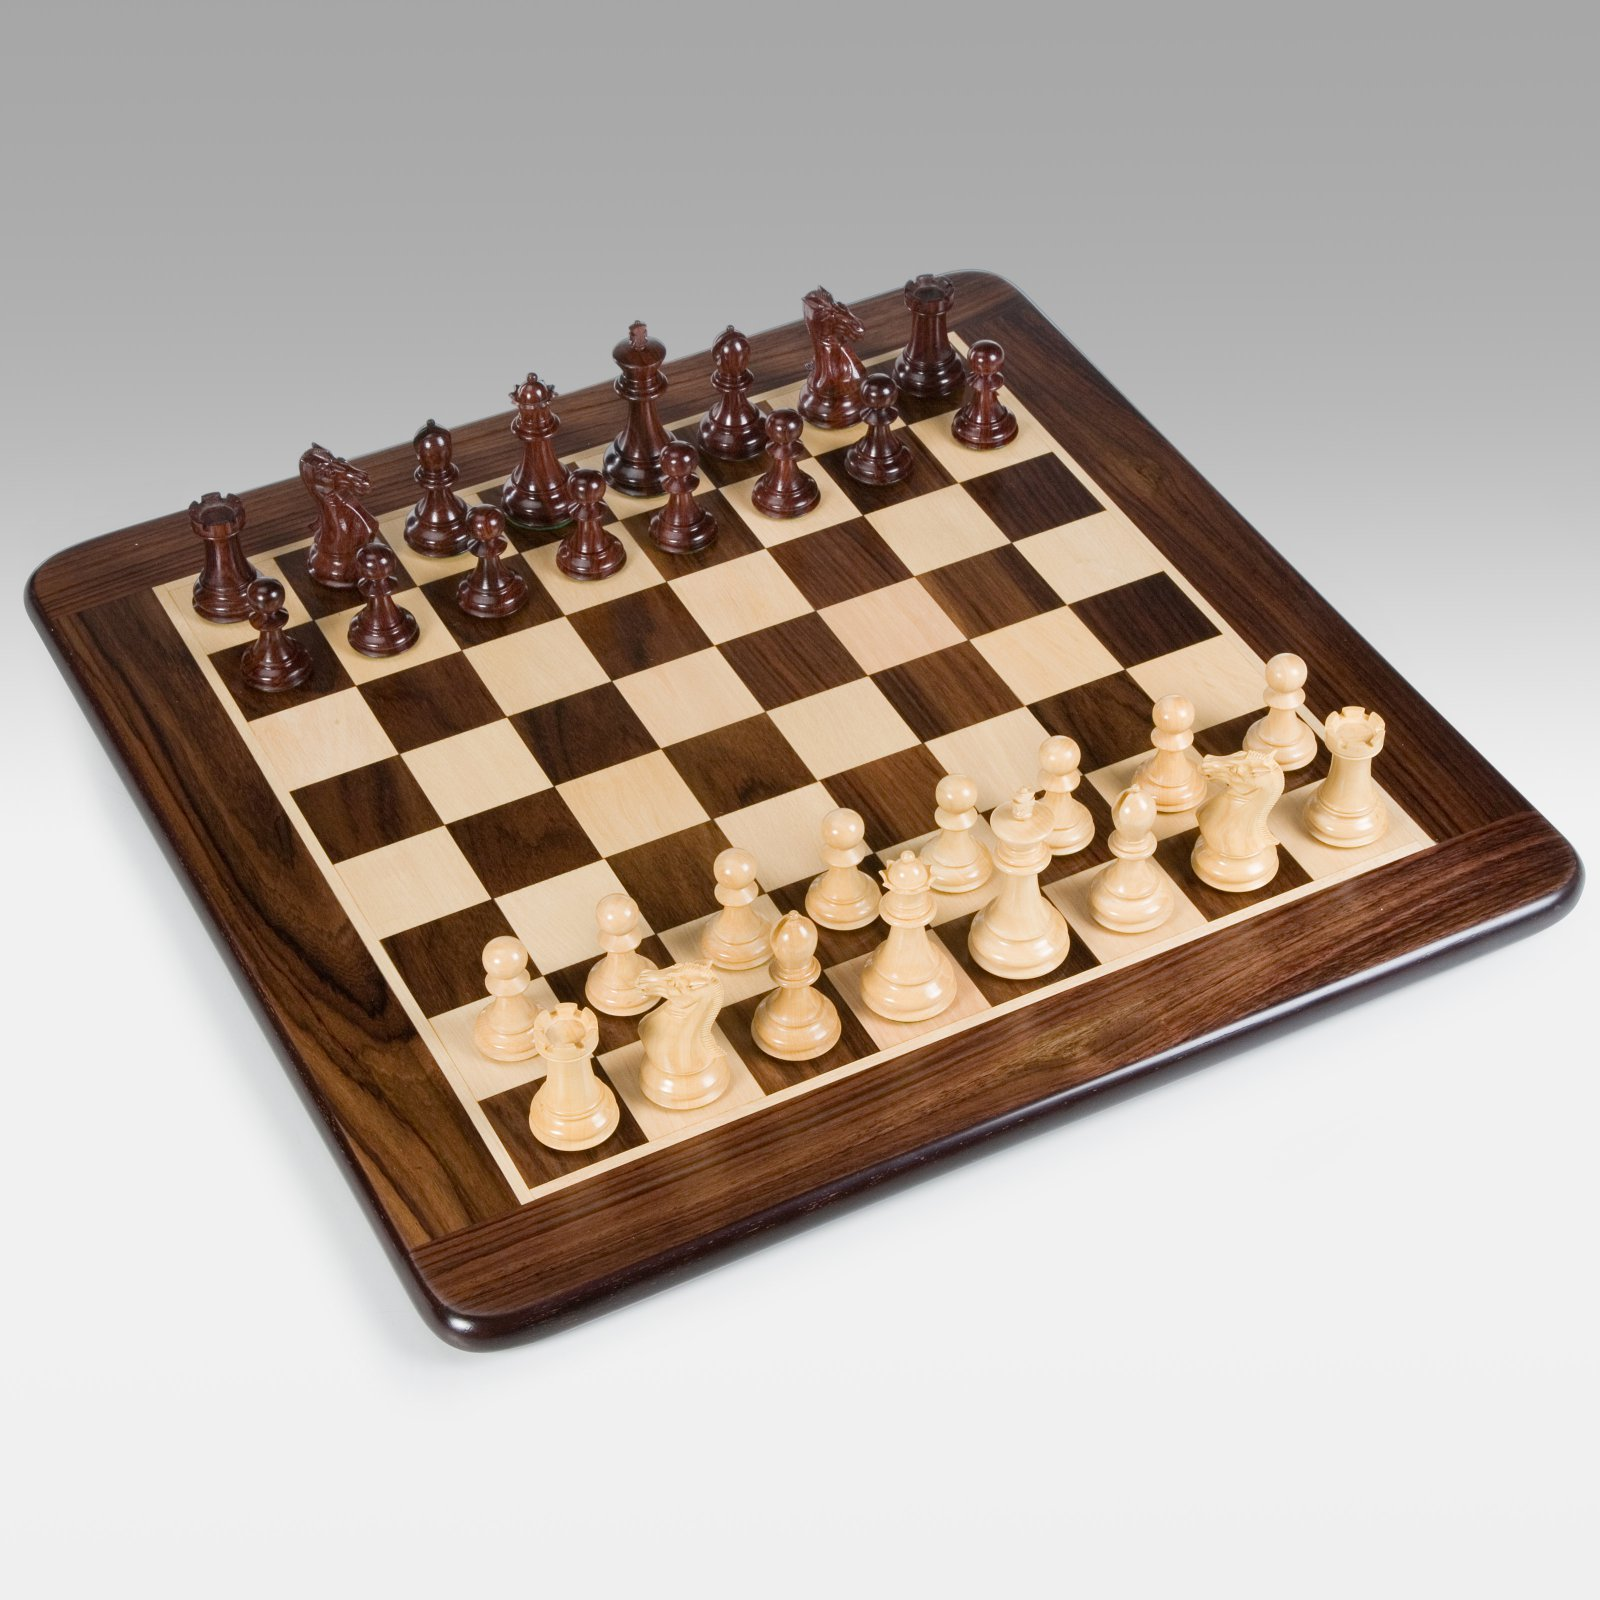 Grand Staunton Rosewood Chess Set, Weighted Pieces and Ro...